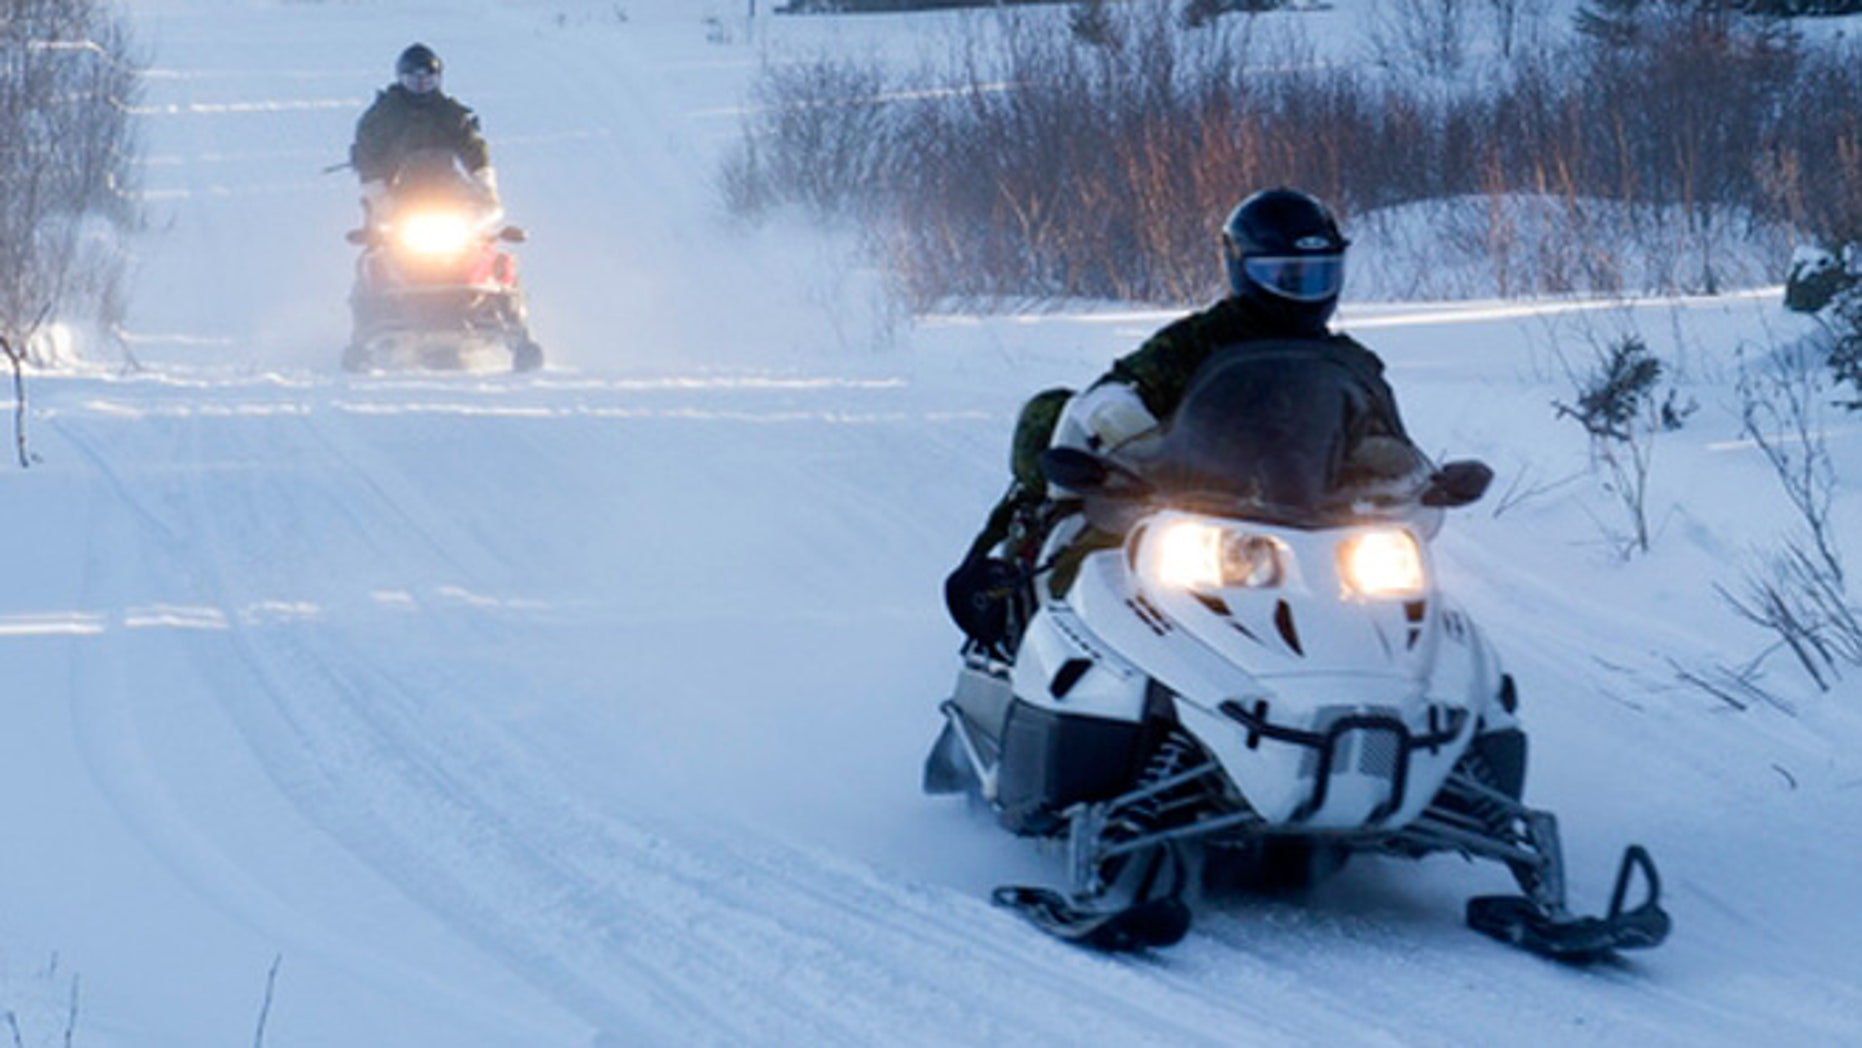 Members of the Arctic Response Company Group conducting exercises on conventional snow mobiles.